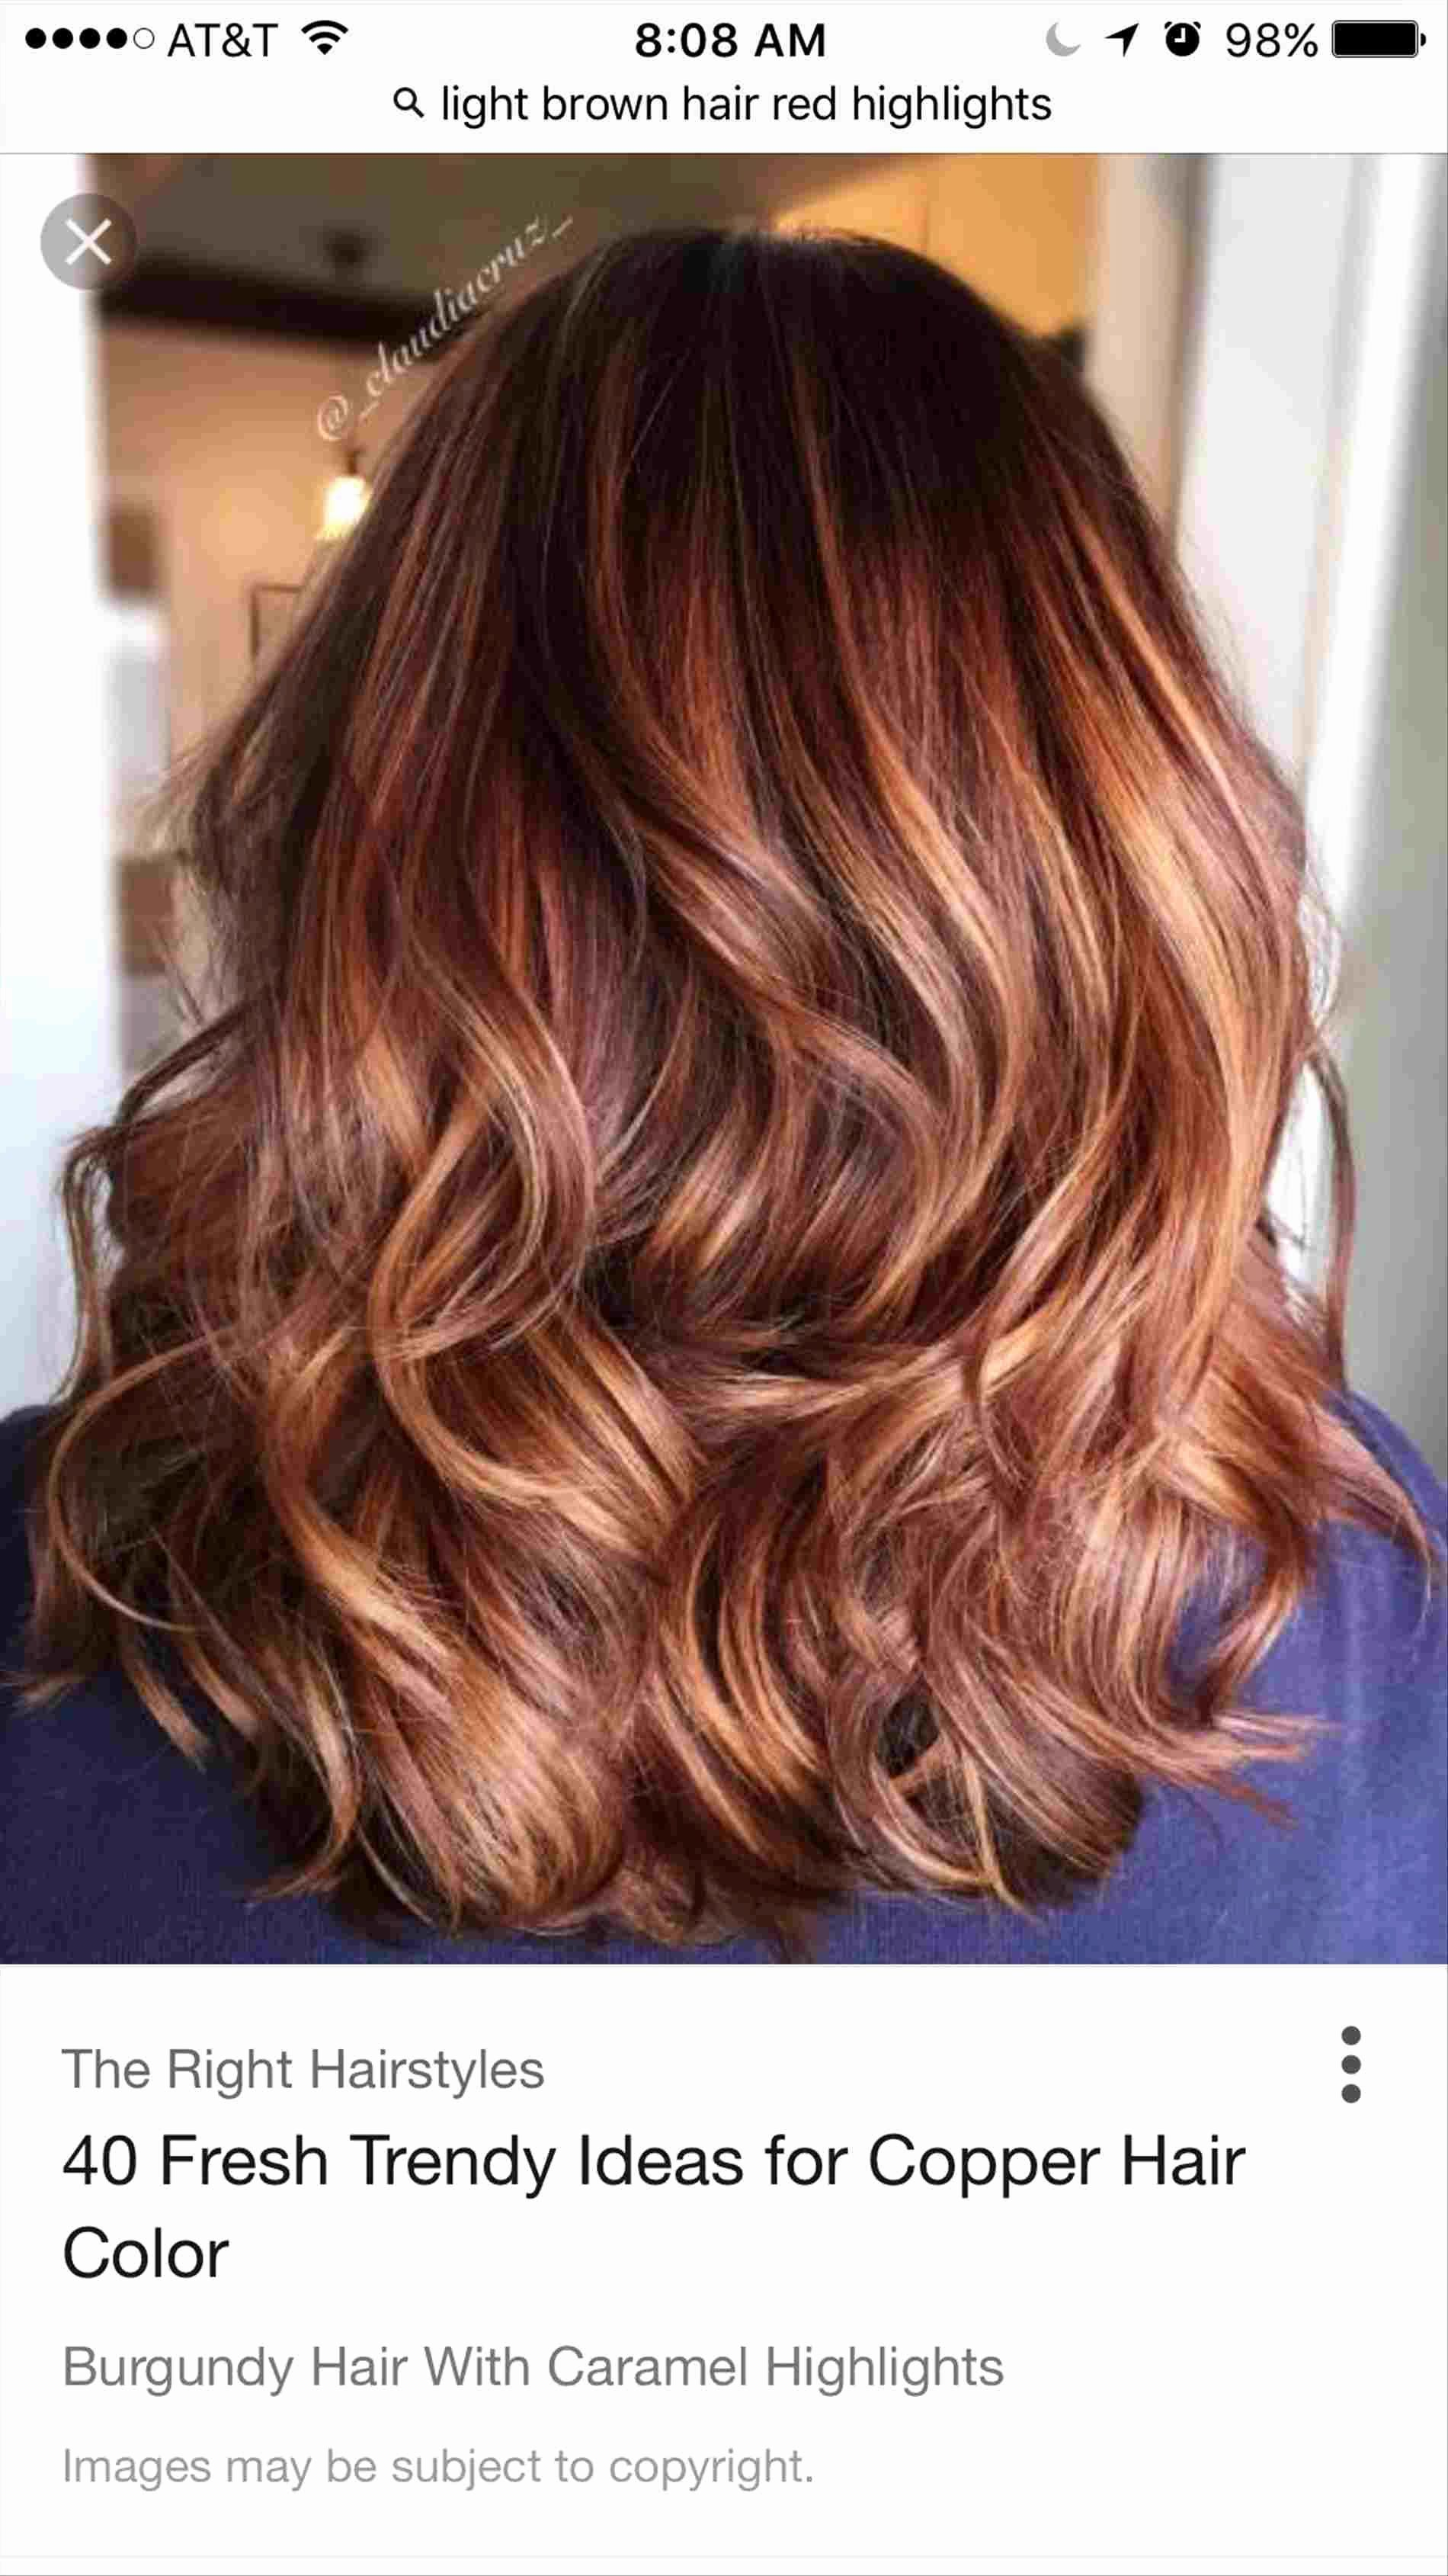 33 Elegant Blonde Hair With Copper Lowlights Pictures Www Chestnut Hair Color Copper Hair Color Hair Styles